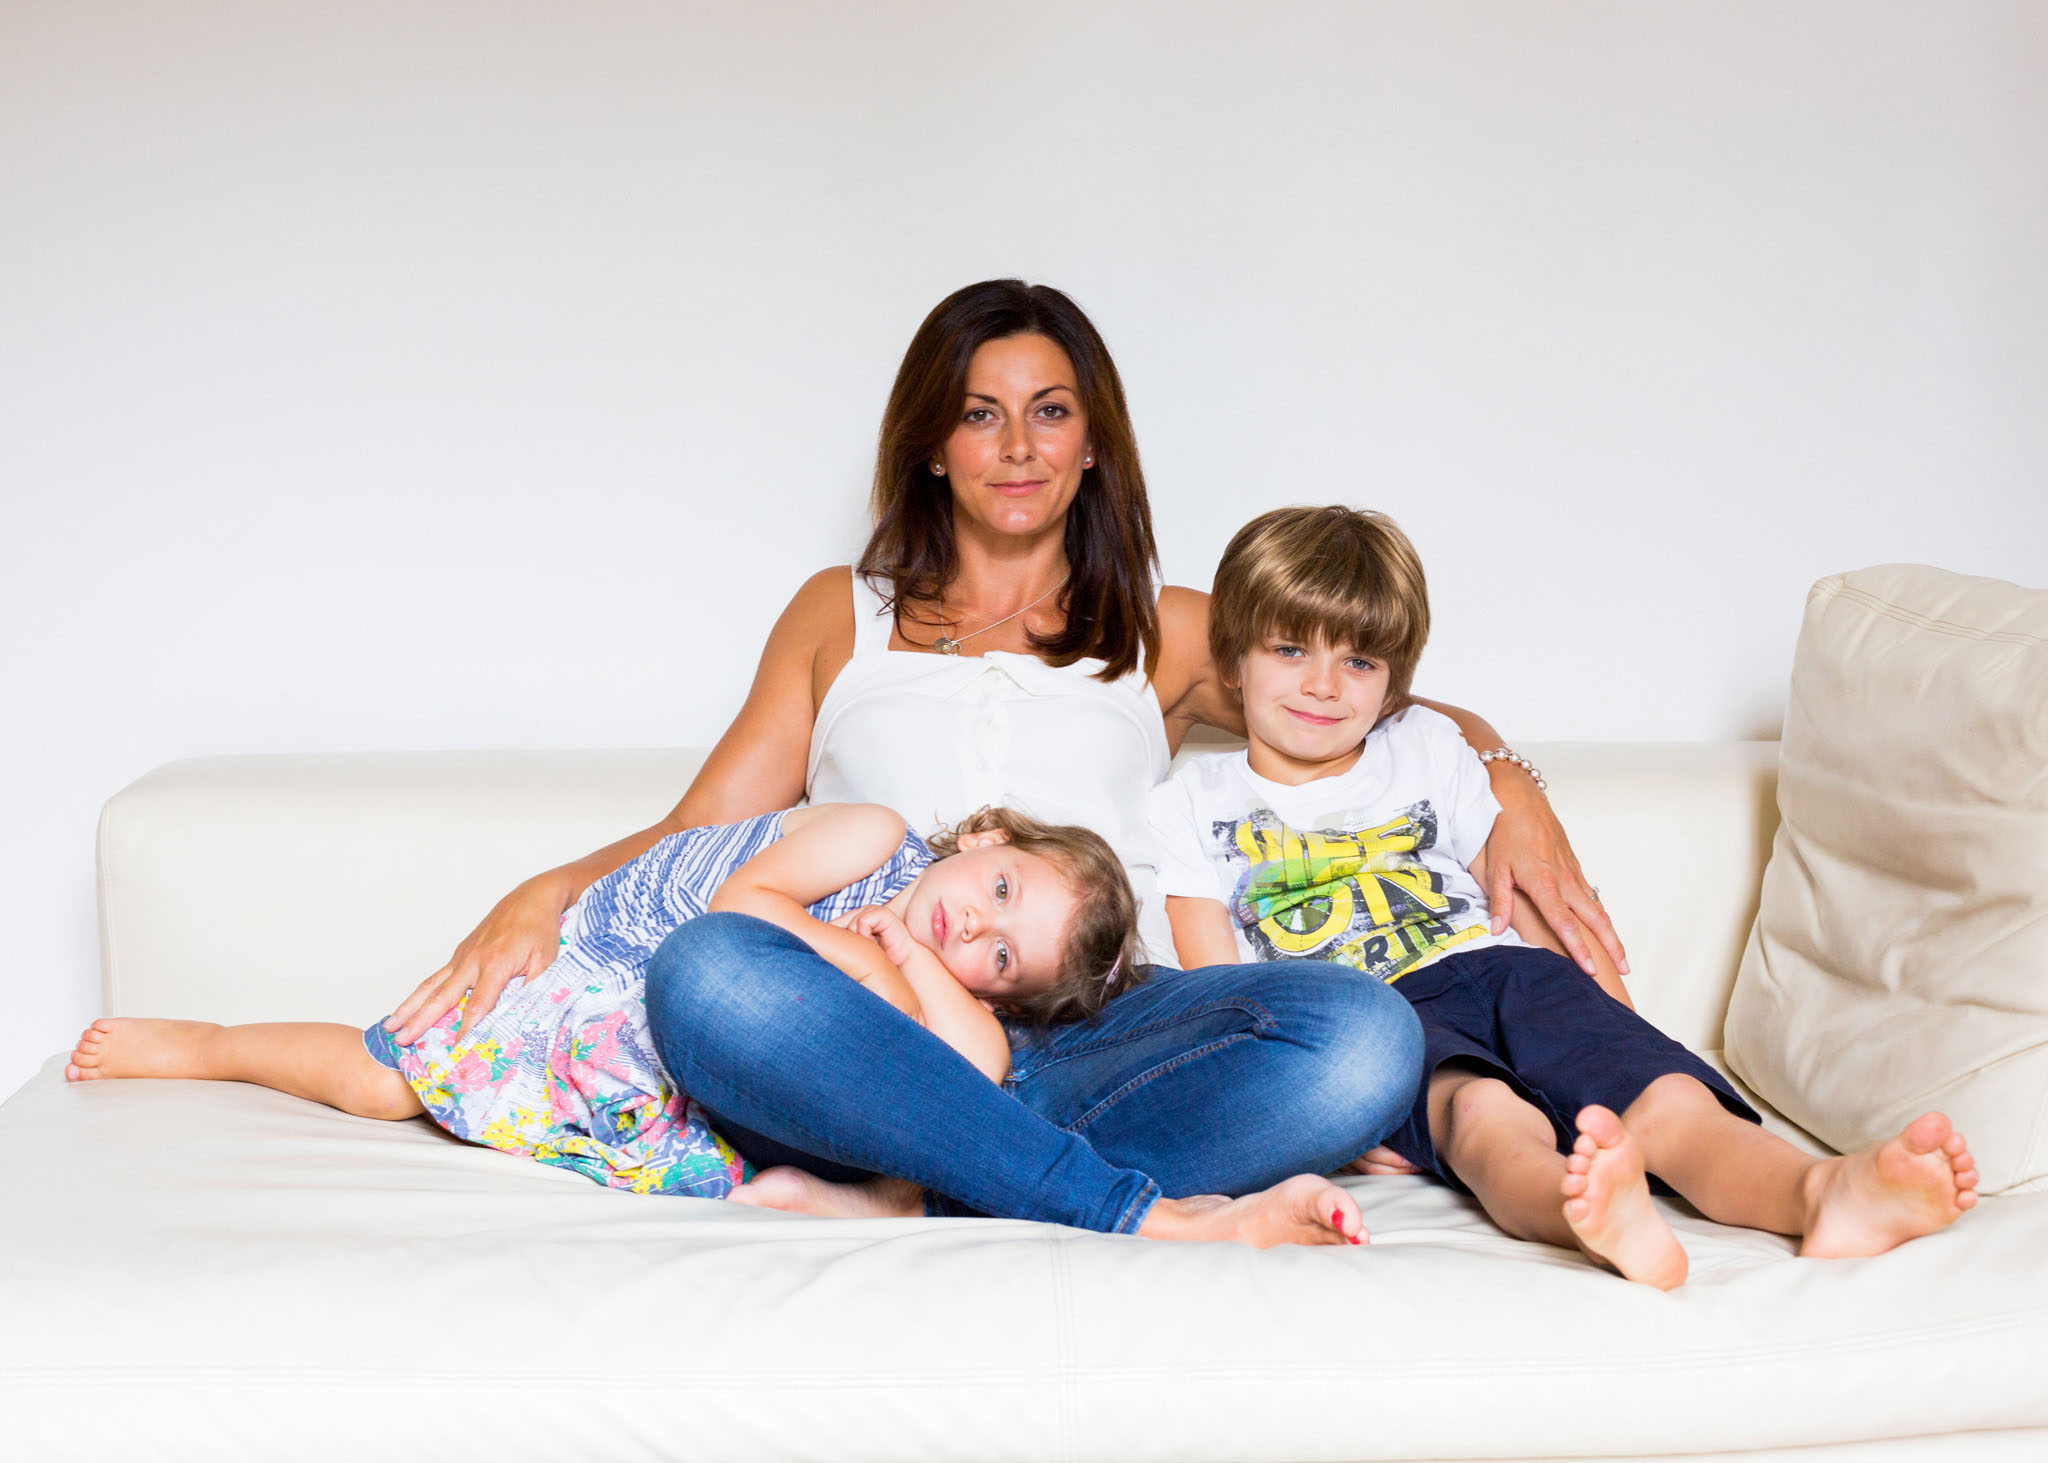 Lifestyle family portrait photography of a young family on the sofa in Didsbury, Manchester